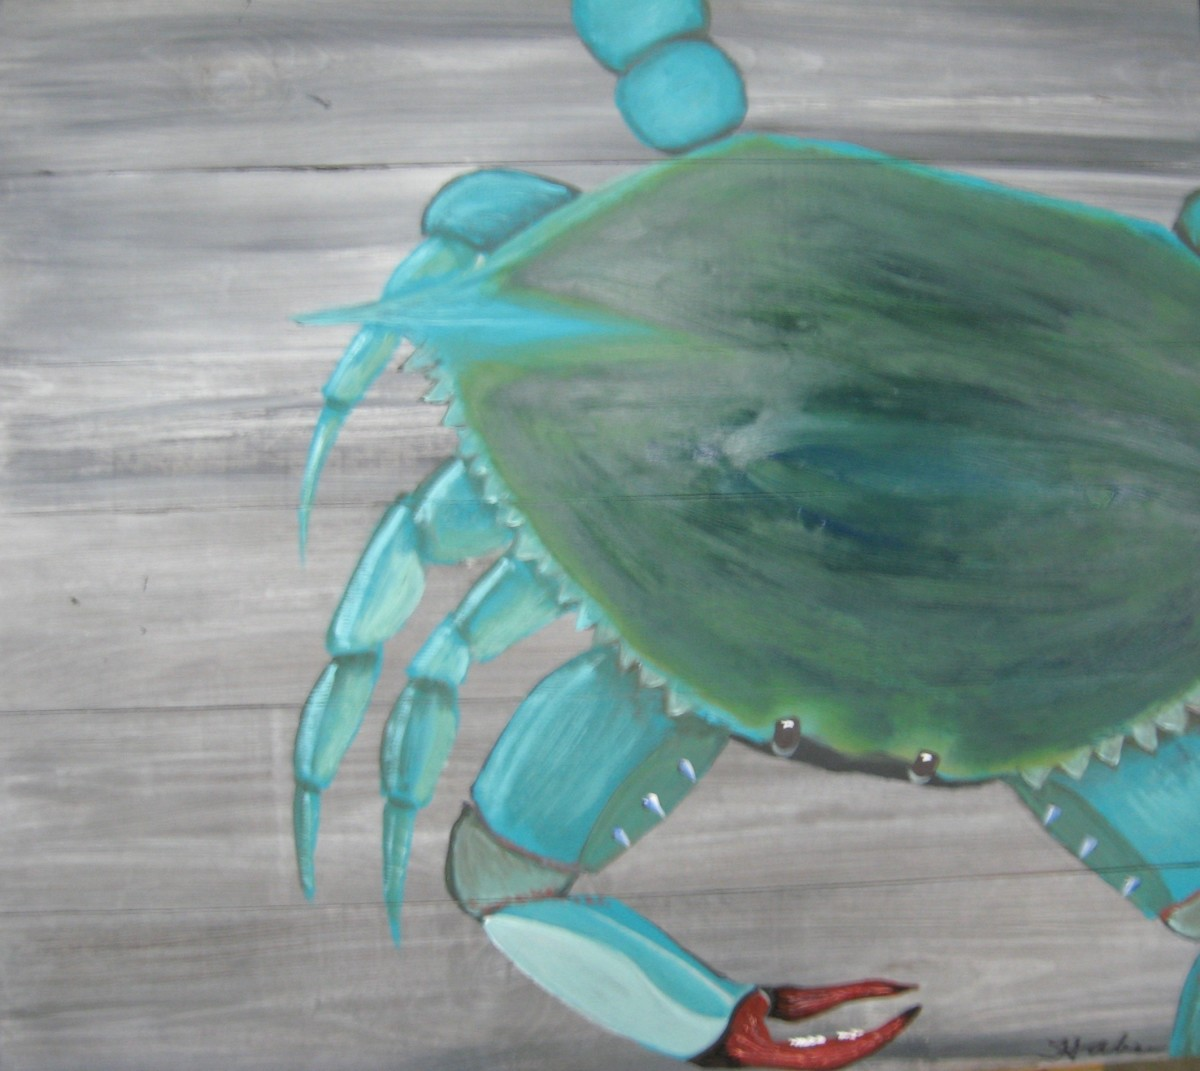 Giant Blue Crab on Wood